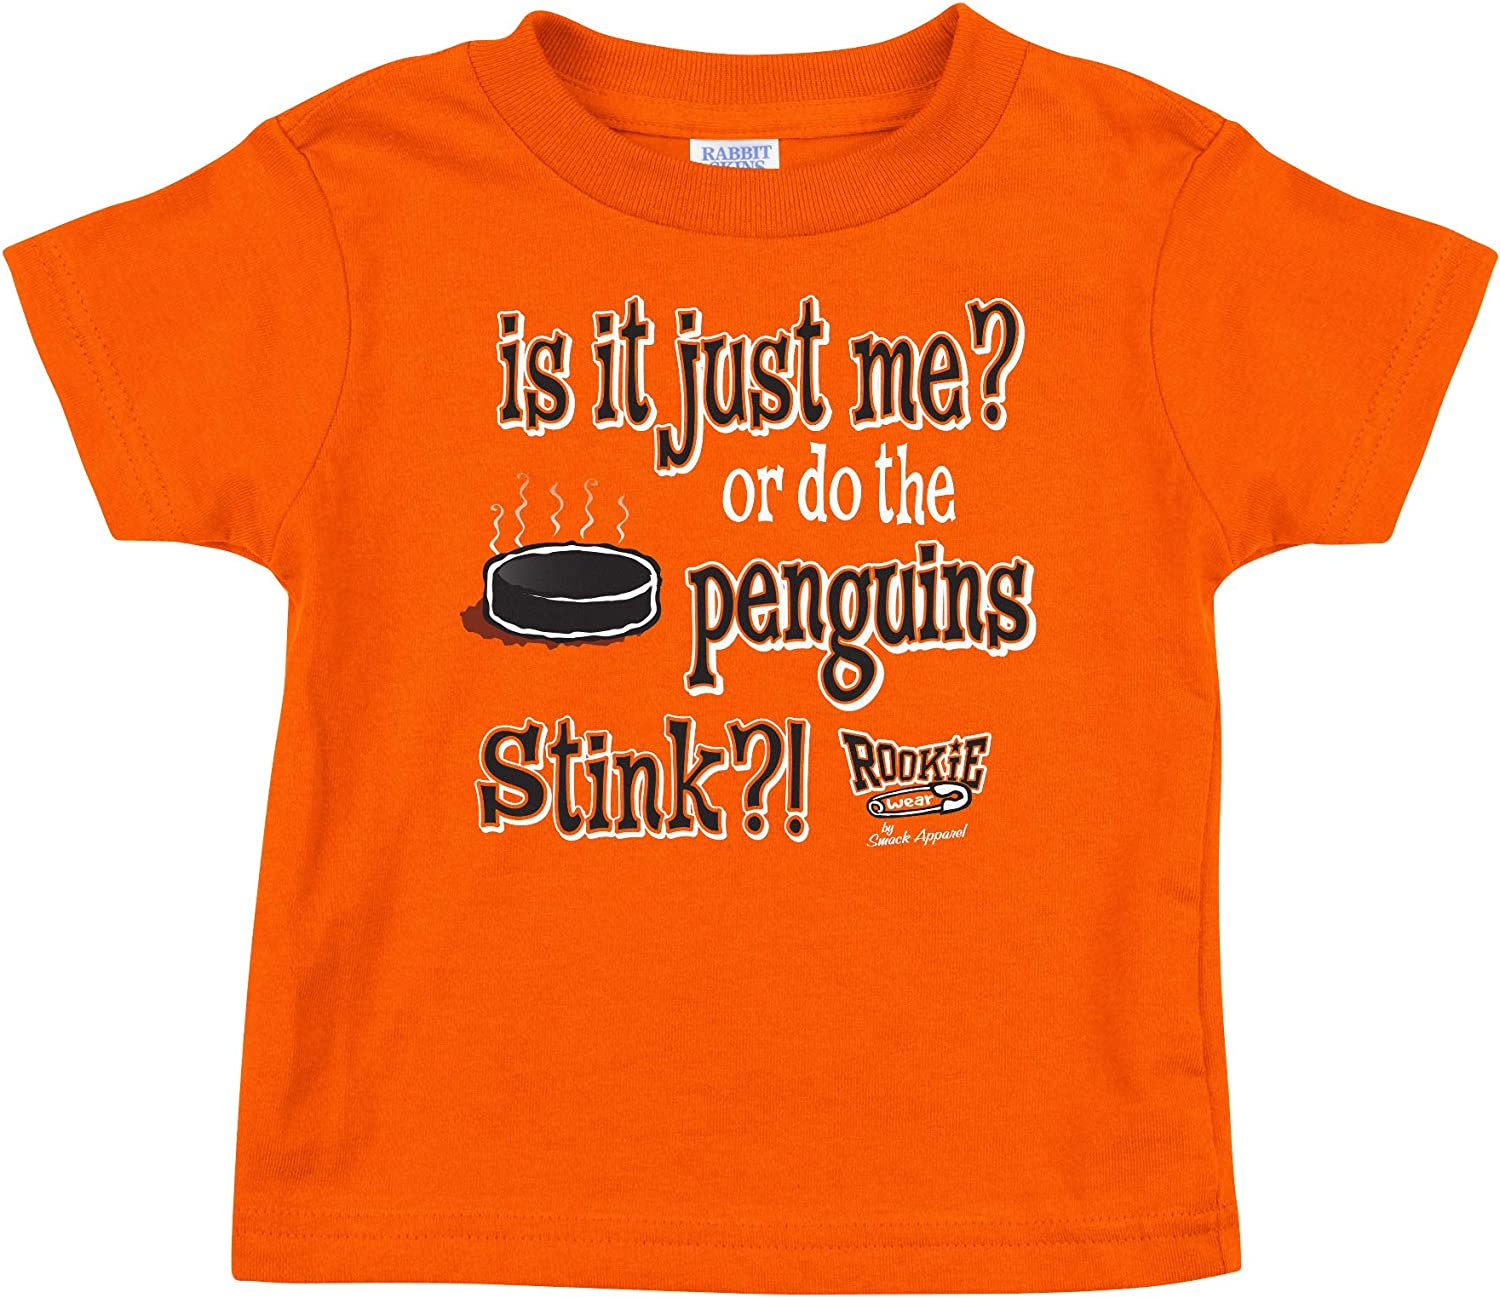 Orange Onesie or Tee NB-4T is It Just Me? Or do The Penguins Stink? Rookie Wear by Smack Apparel Philadelphia Hockey Fans